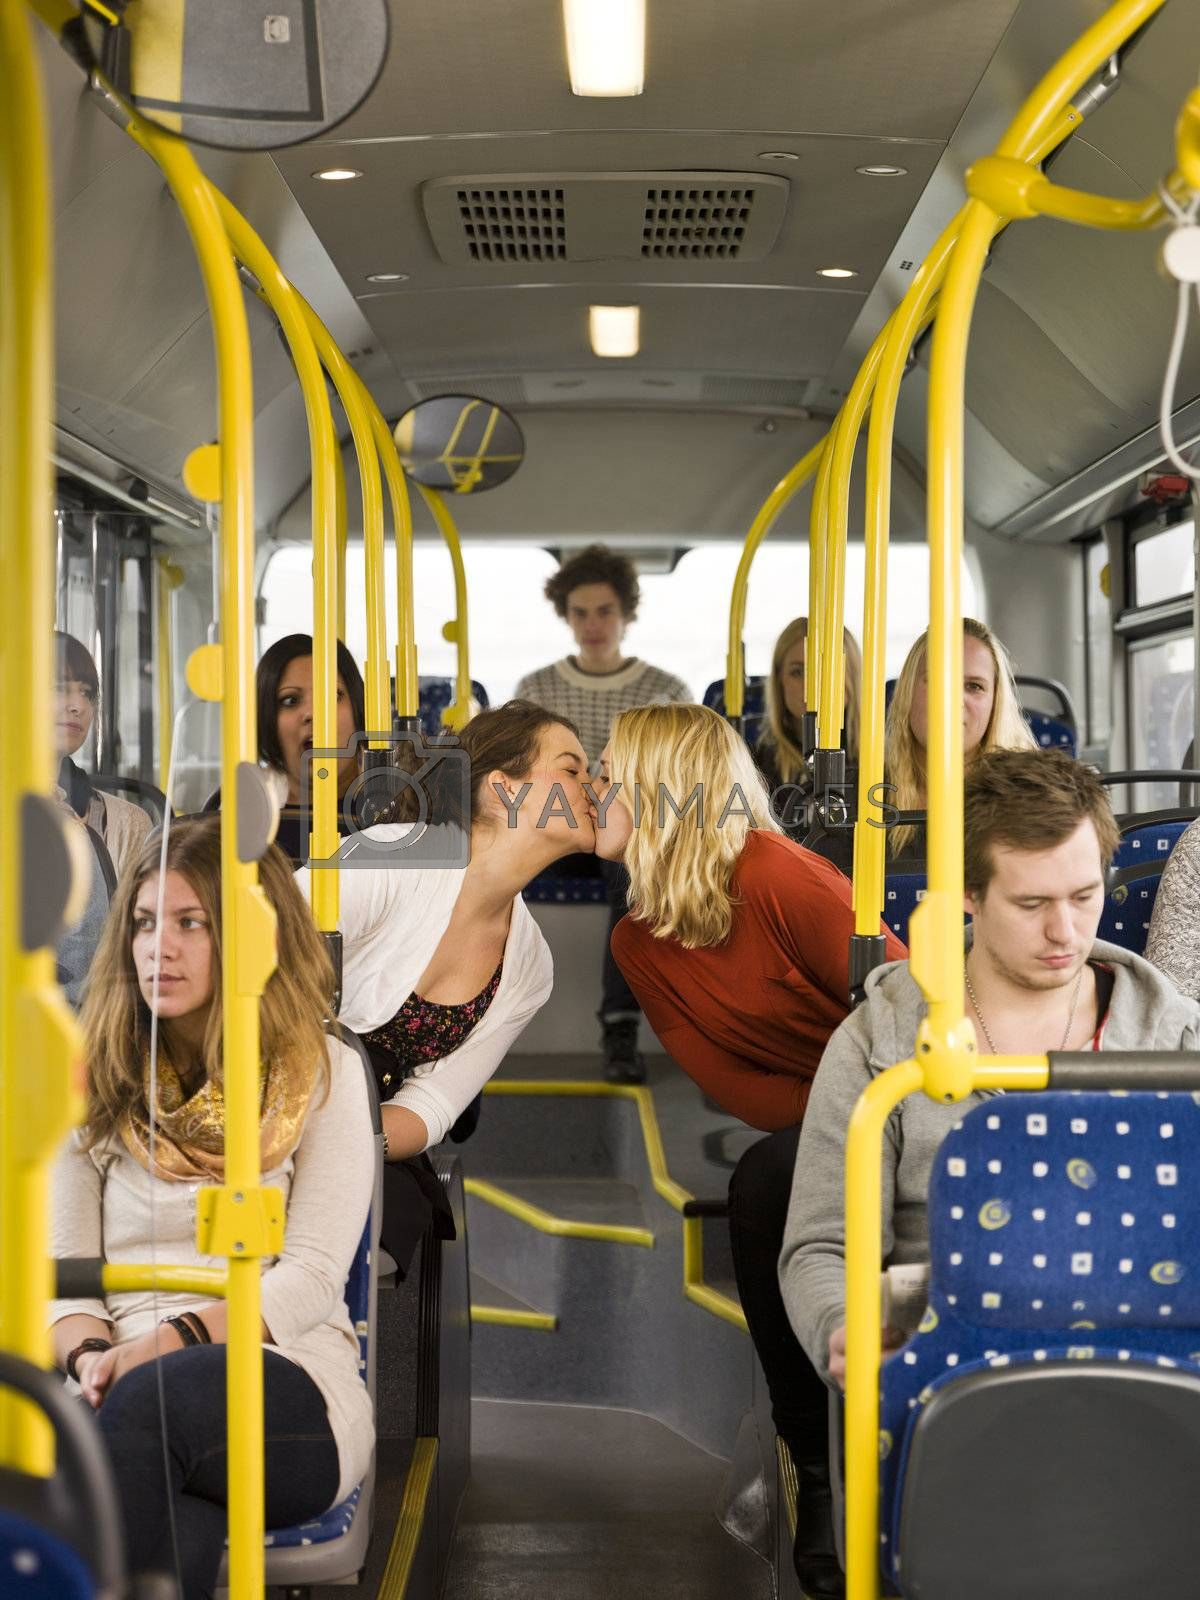 Kissing women on the bus